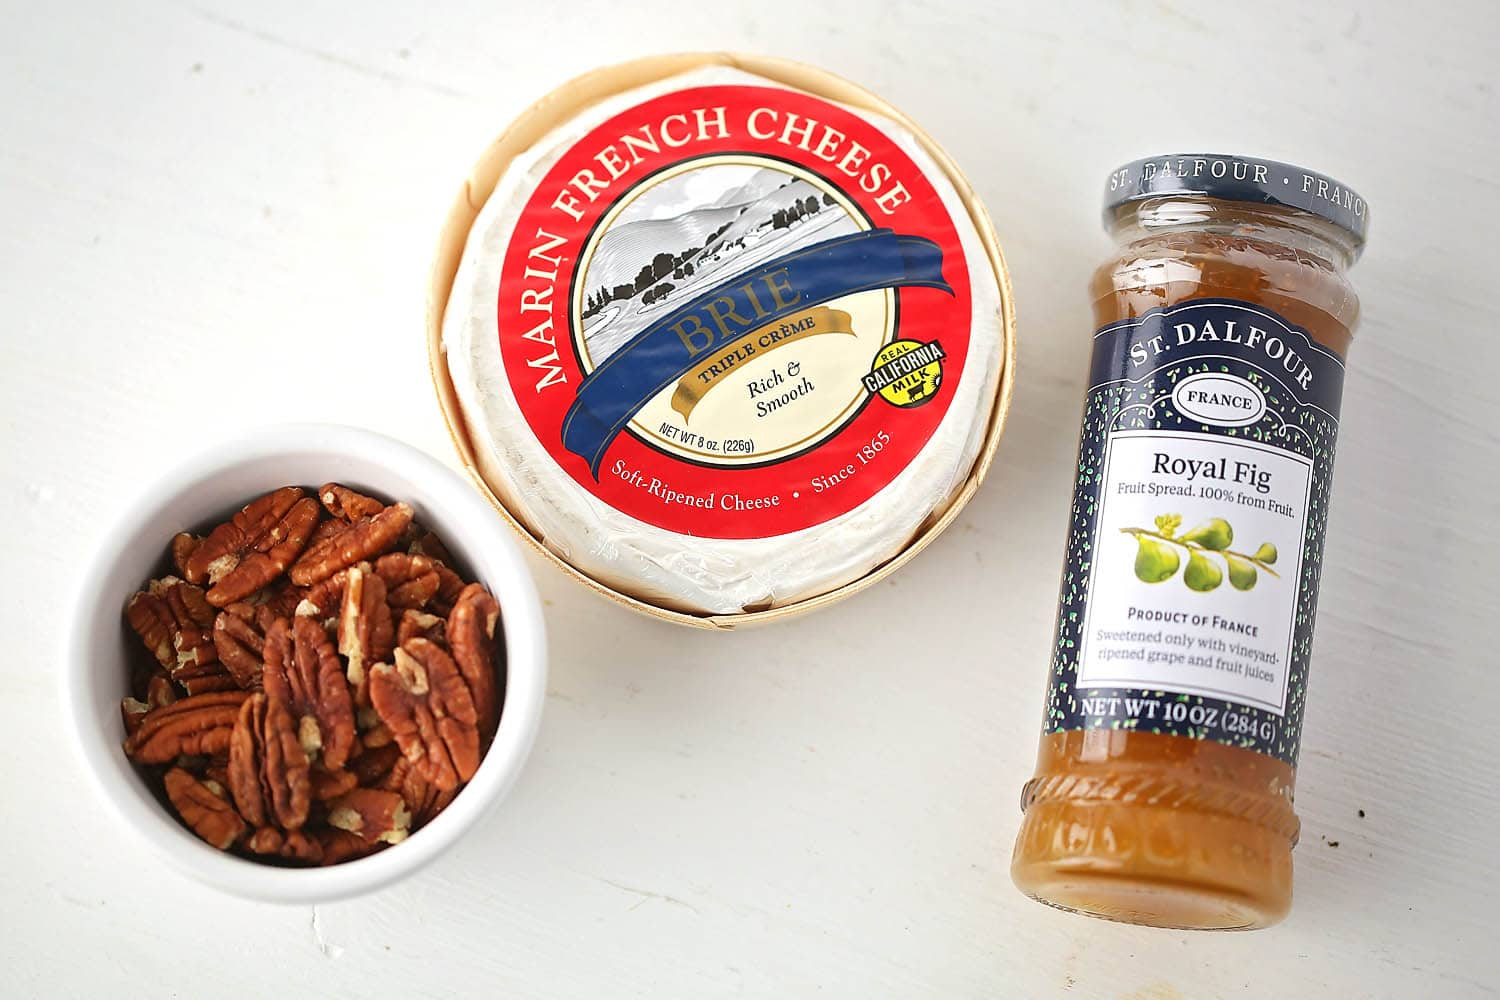 jam, brie cheese and jar with pecans